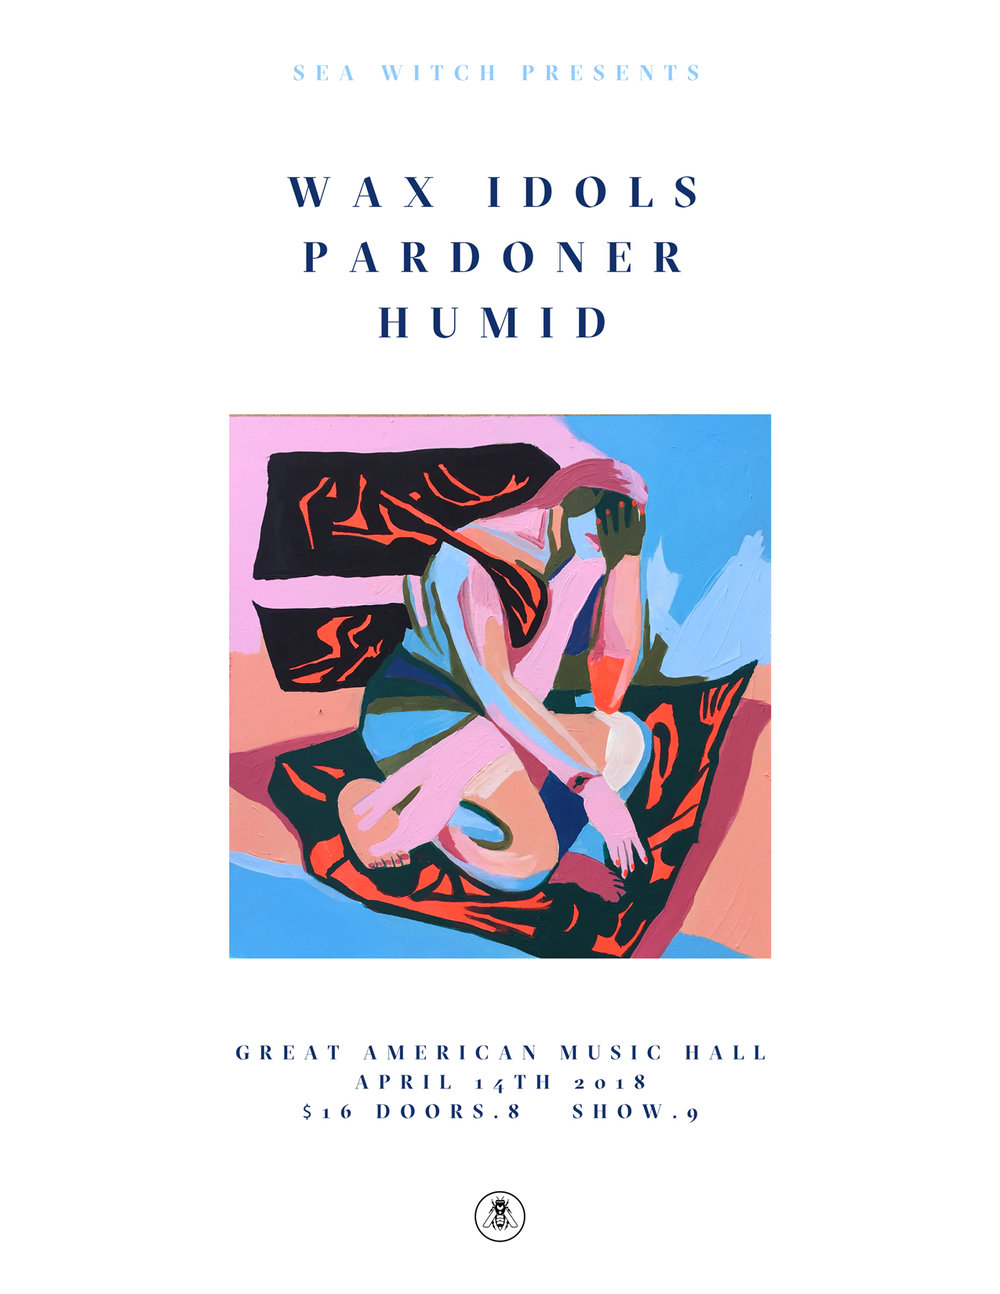 On sale Friday, February 9 - Wax Idols Album Preview Show! Join us for an exclusive first-listen of the band's upcoming album